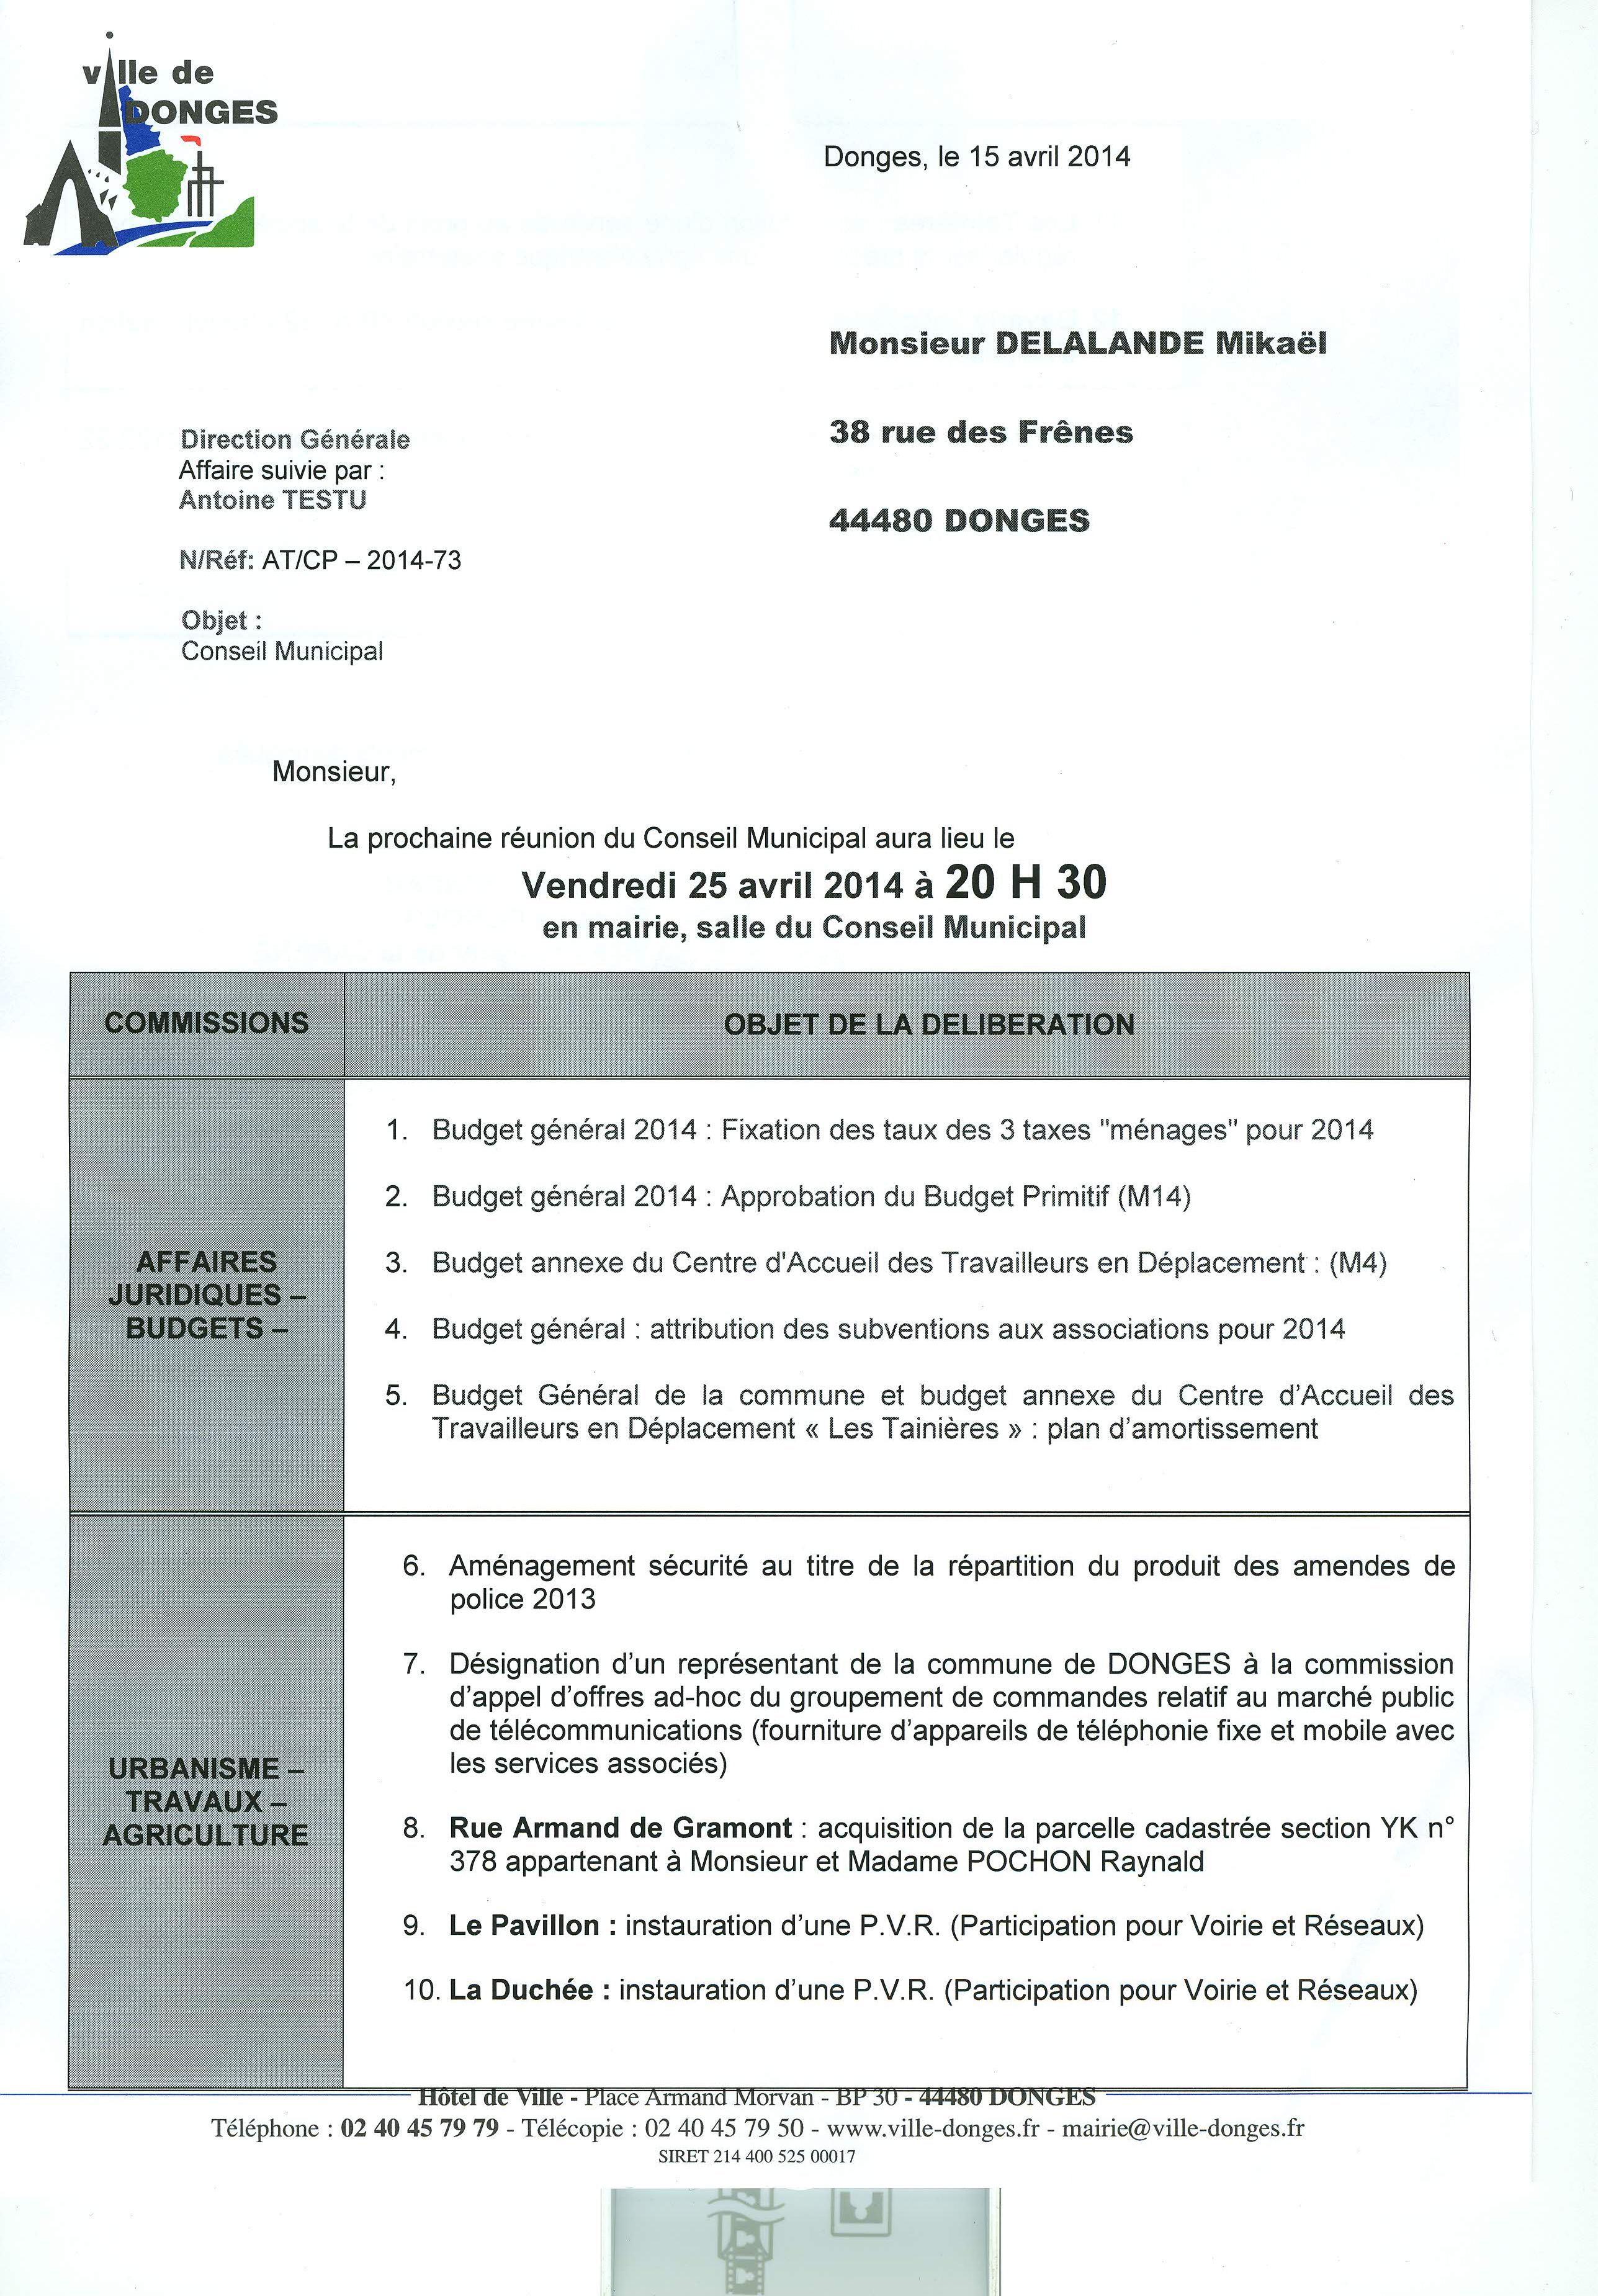 odcm0001-page-001